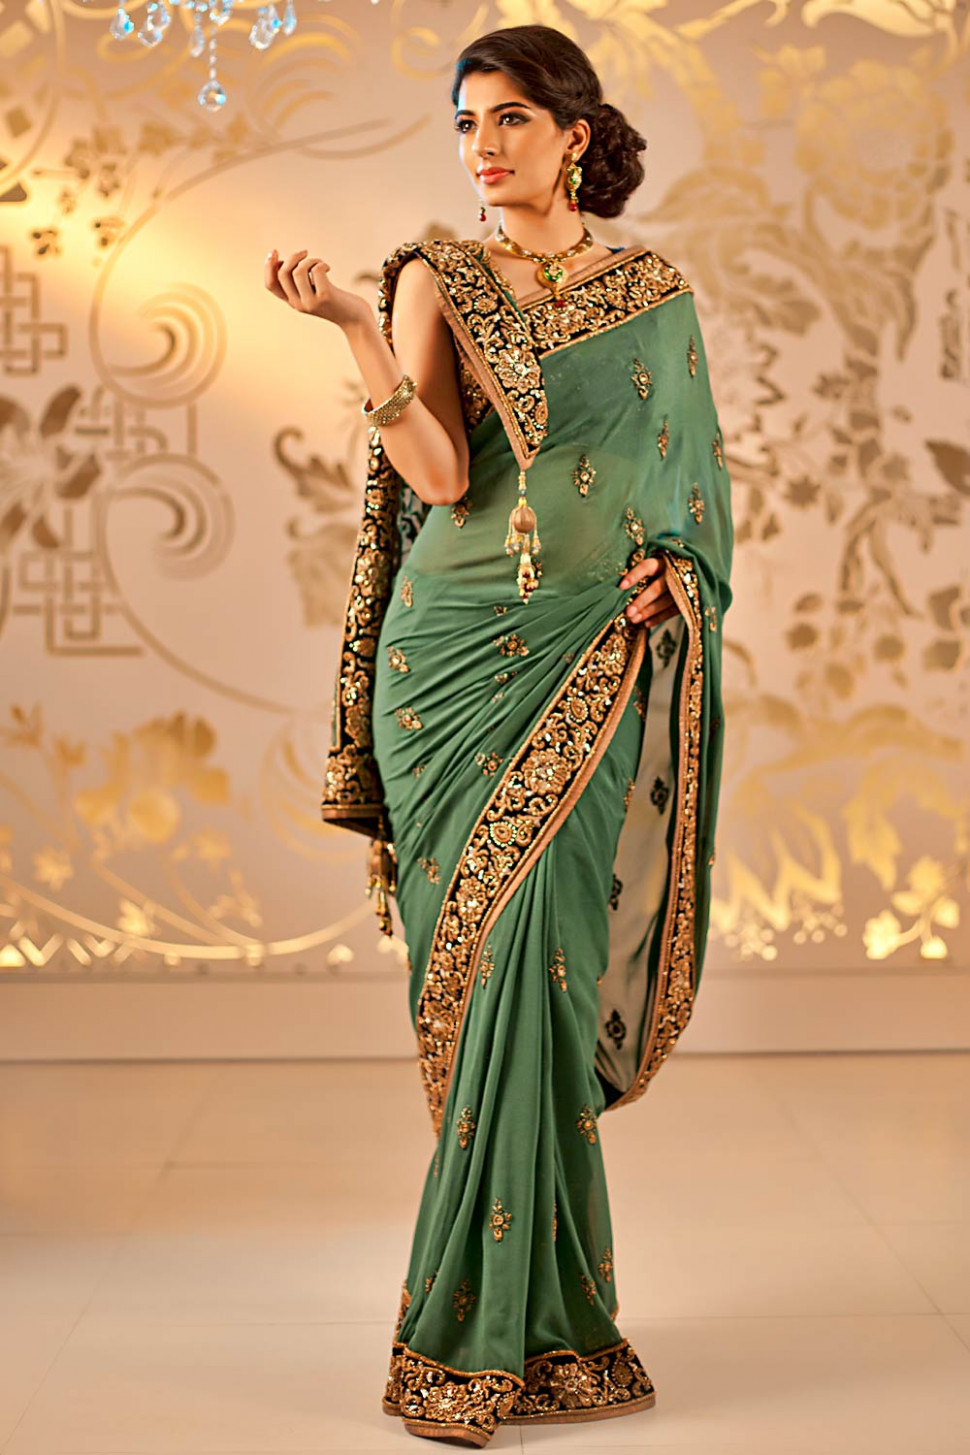 Bridal Sarees  Indian Bridal Sarees  Bridal Sarees for  - saree